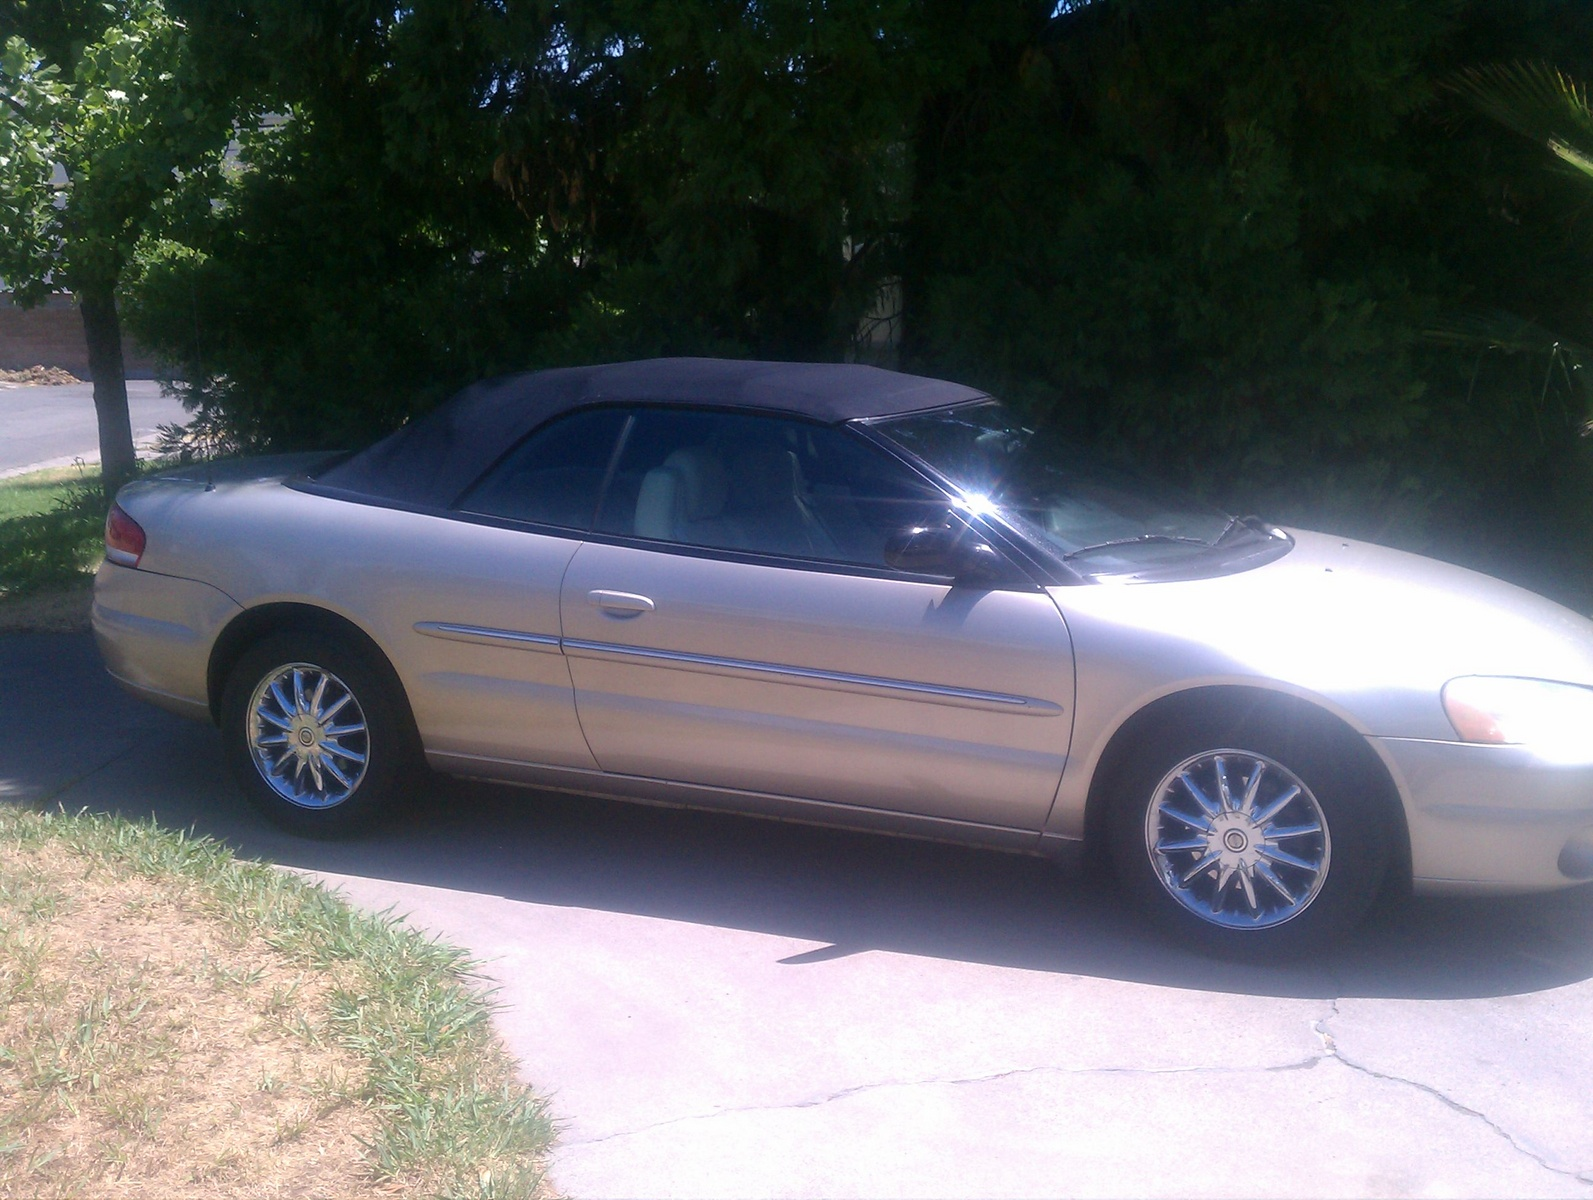 Picture of 2003 Chrysler Sebring Limited Convertible